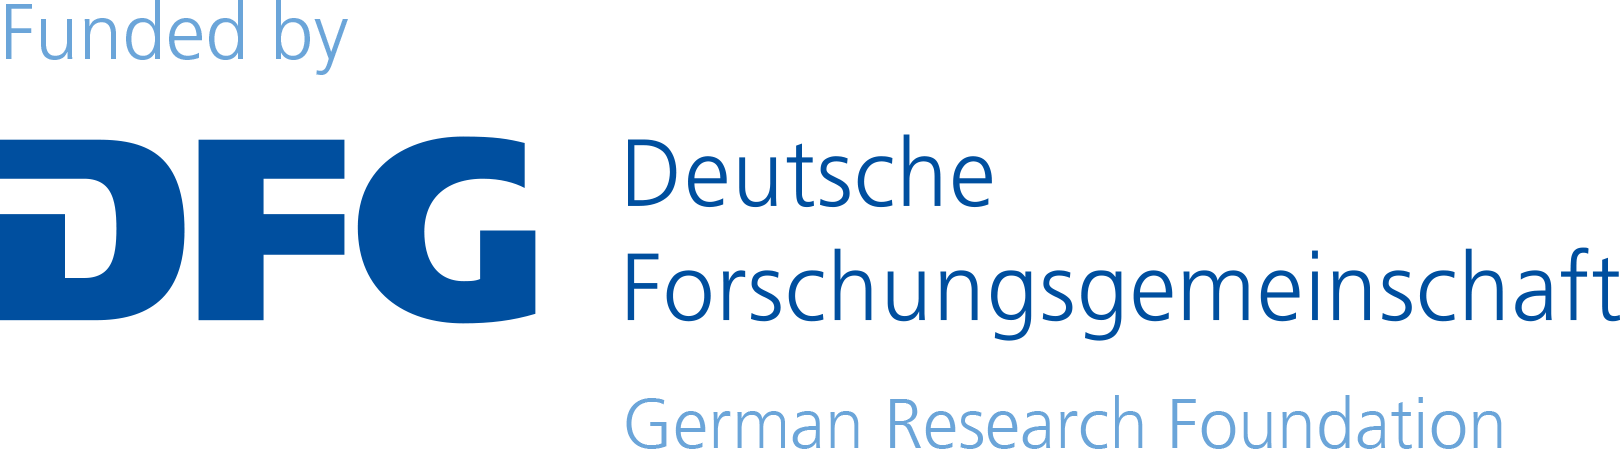 Logo of the German Research Foundation (Deutsche Forschungsgesellschaft).